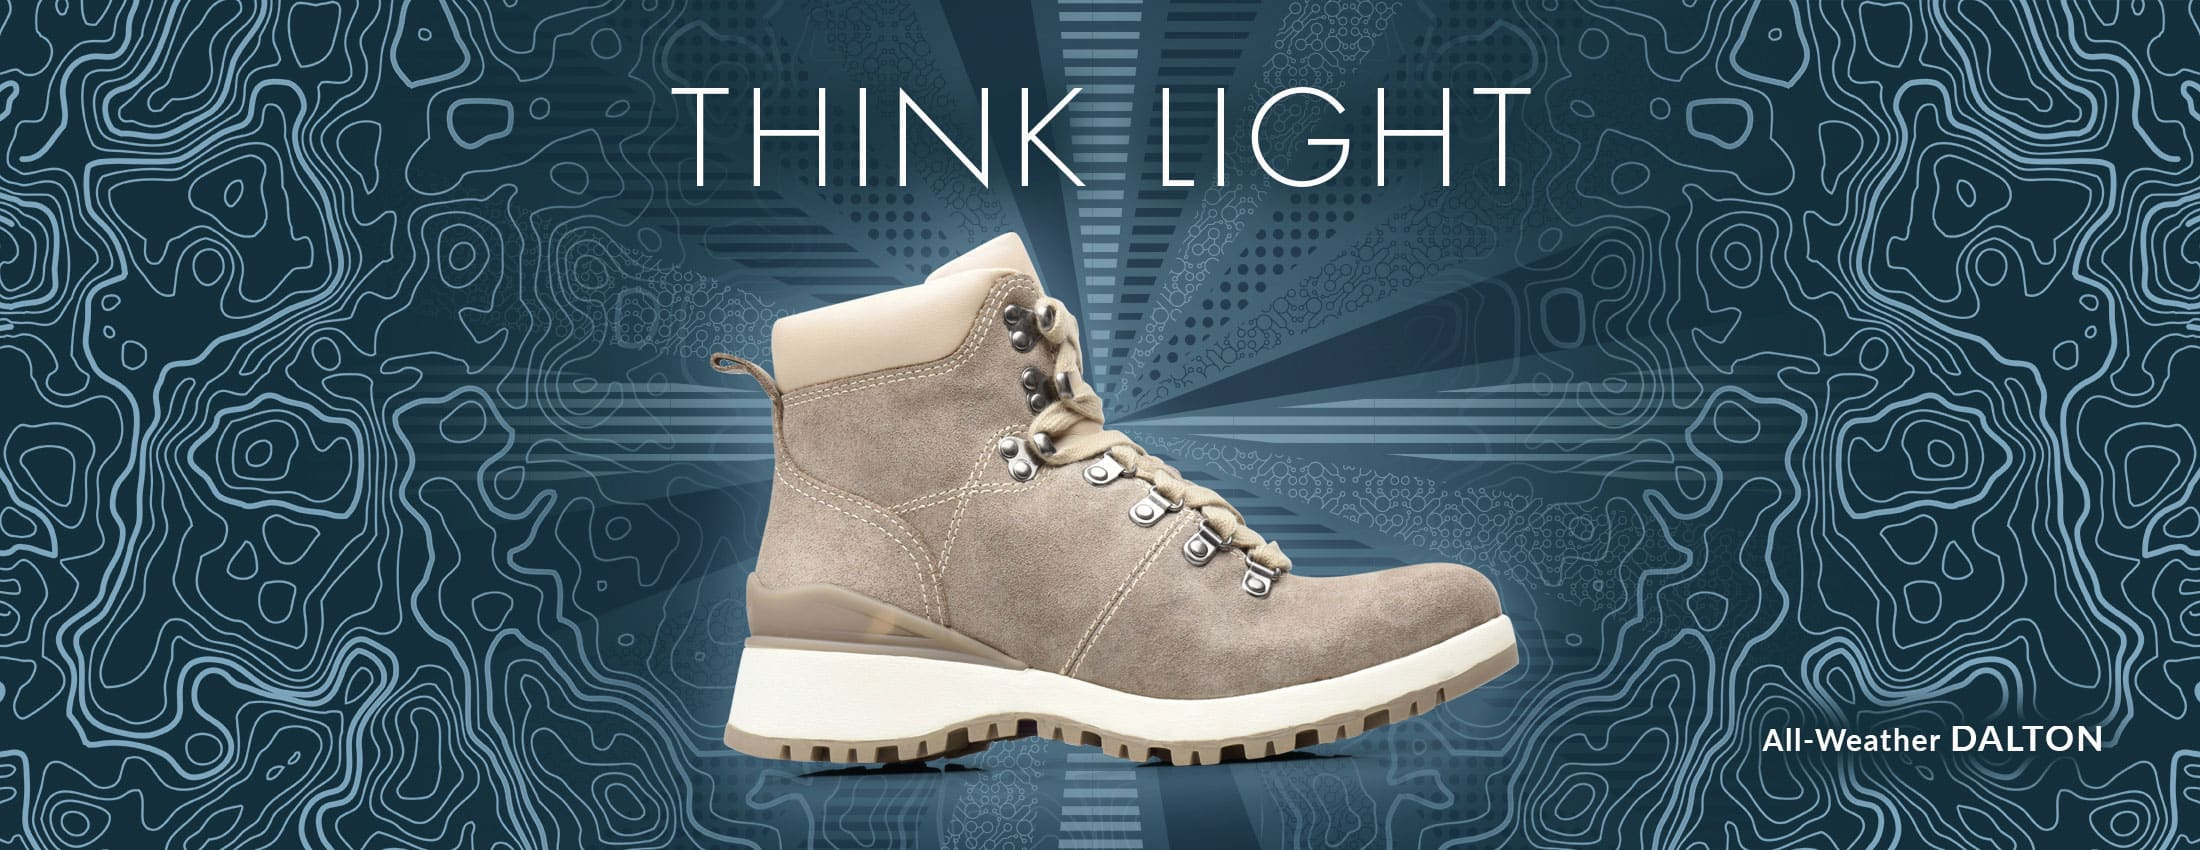 Think Light. Featured style: All-Weather Dalton boot, shown in light grey-cream